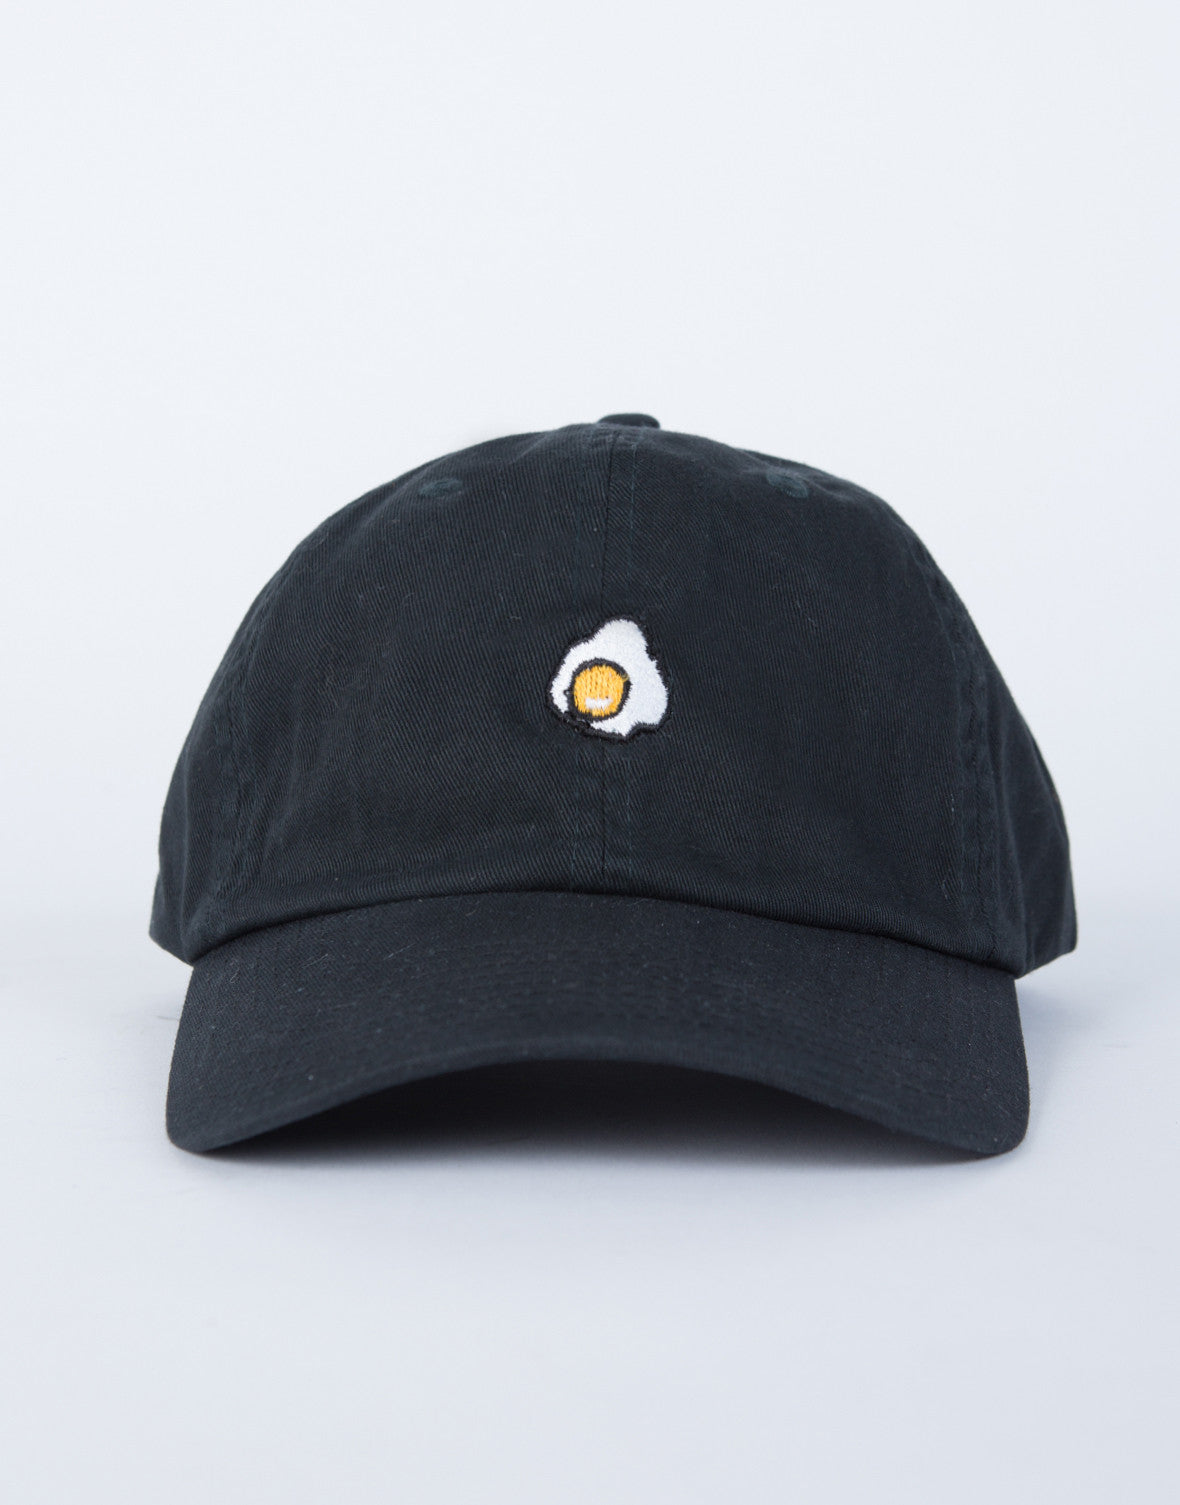 Fried Egg Baseball Cap - Fried Egg Patched Cap - Patched Baseball ... f5ed5ee060bc